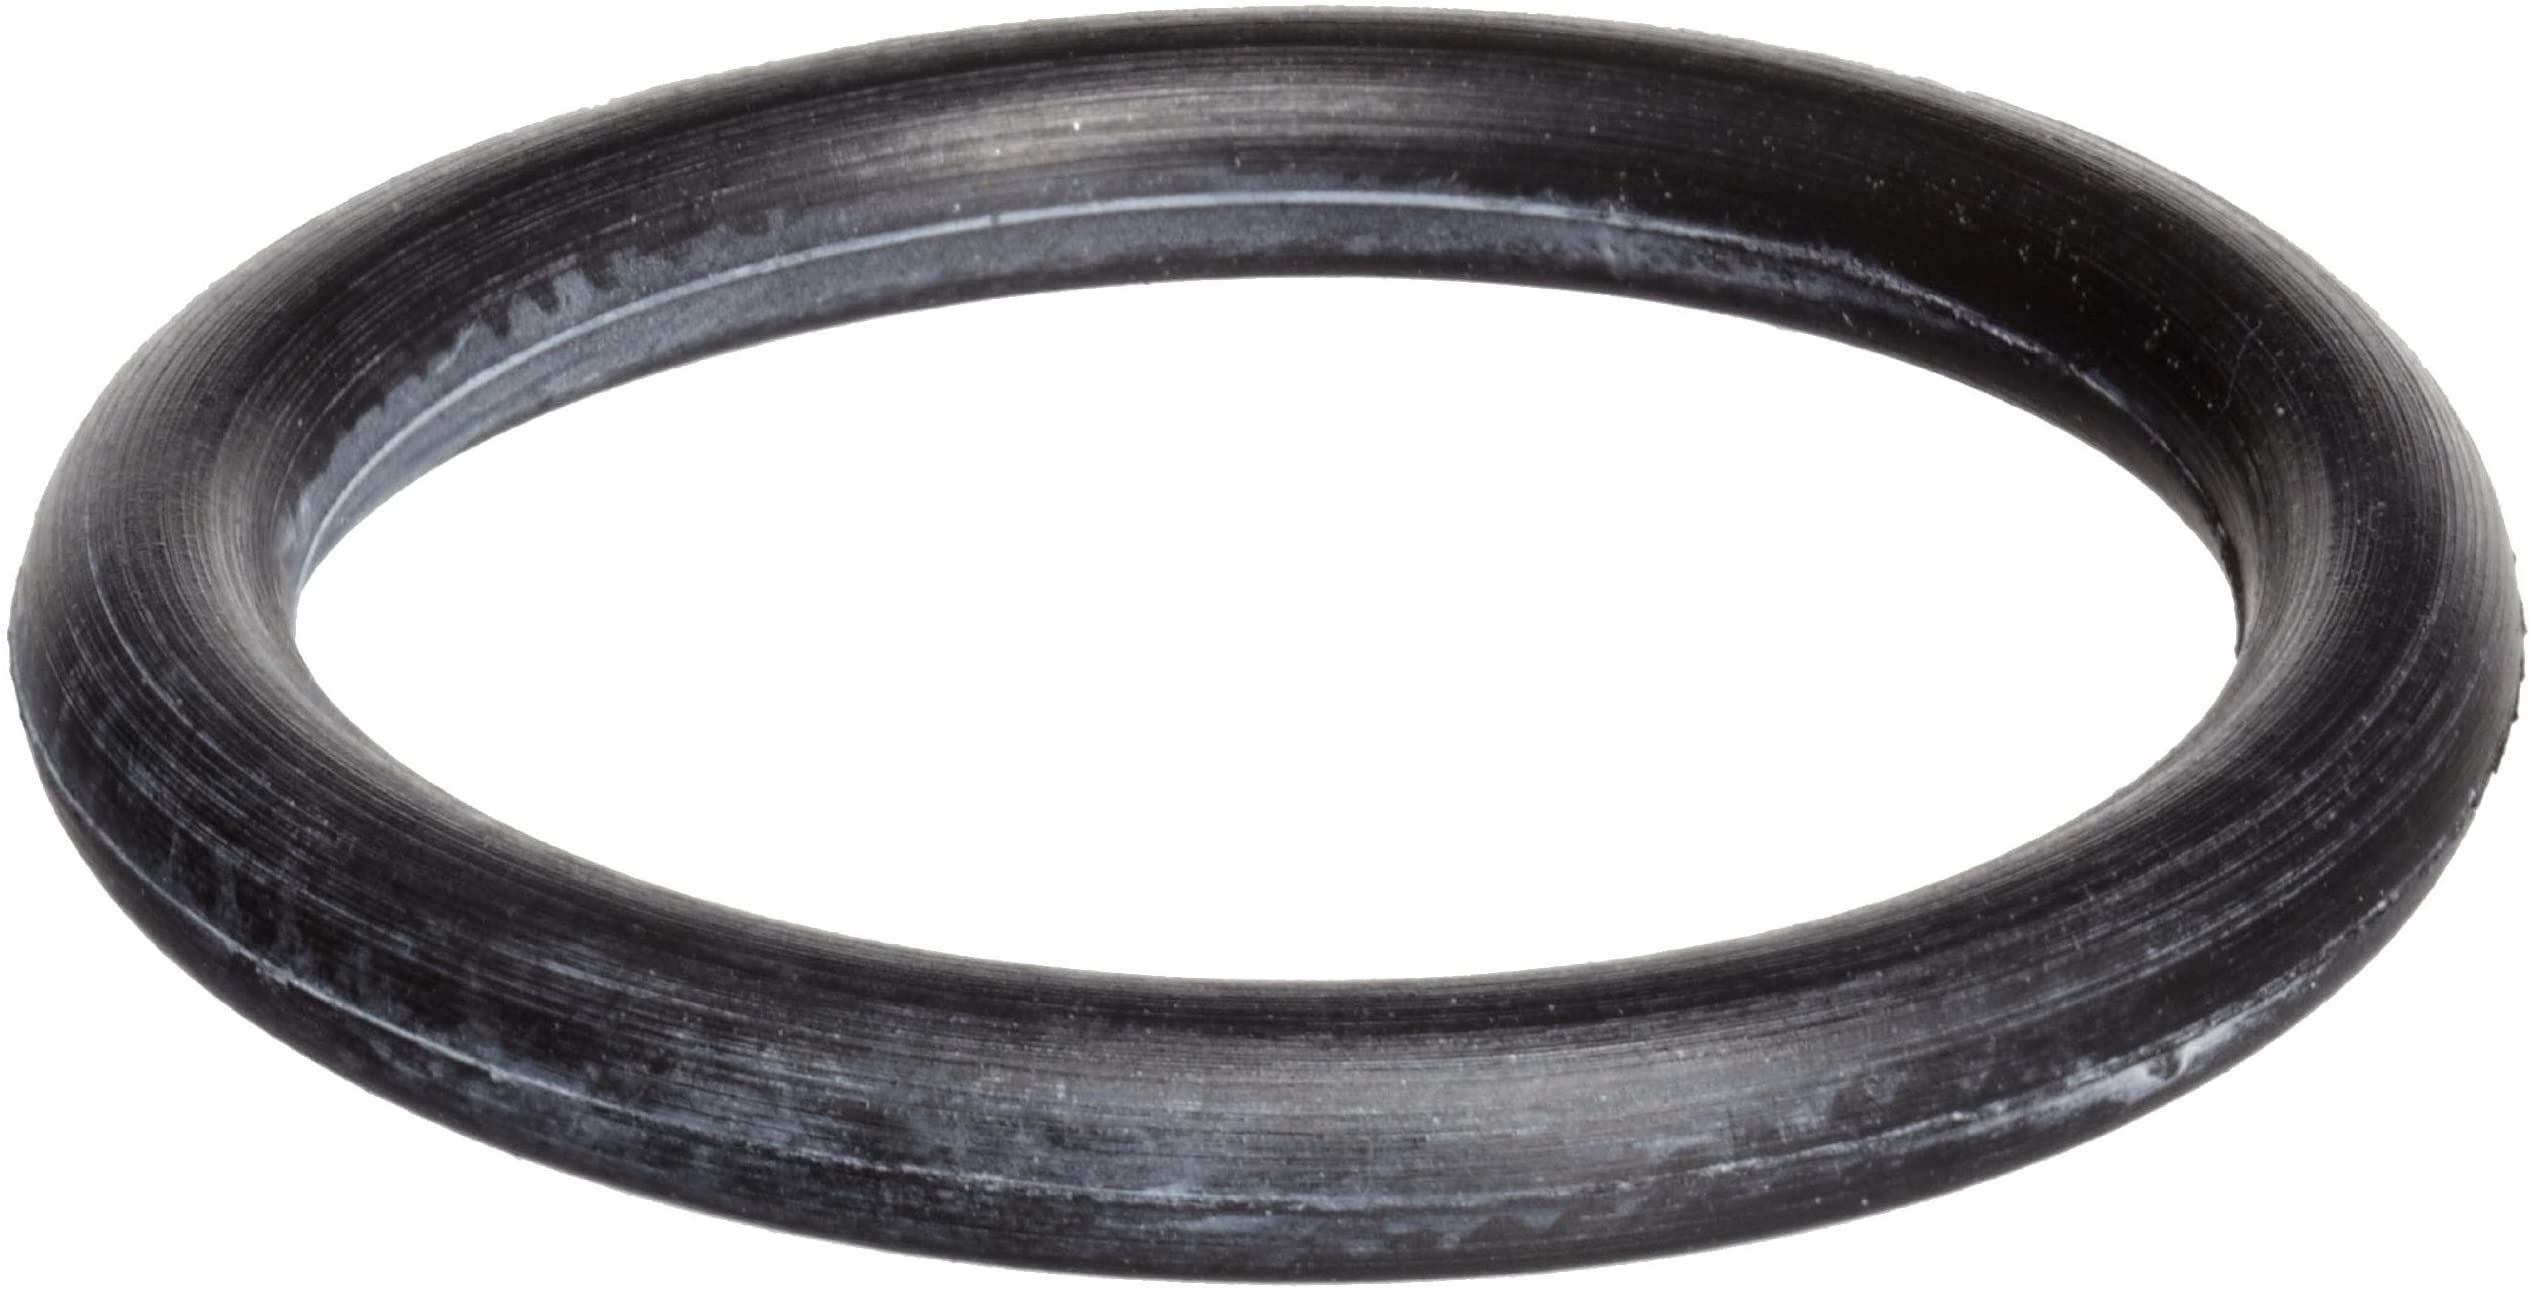 10 St. O-Ring Nullring Rundring 32,2 x 3,0 mm NBR 80 Shore A schwarz